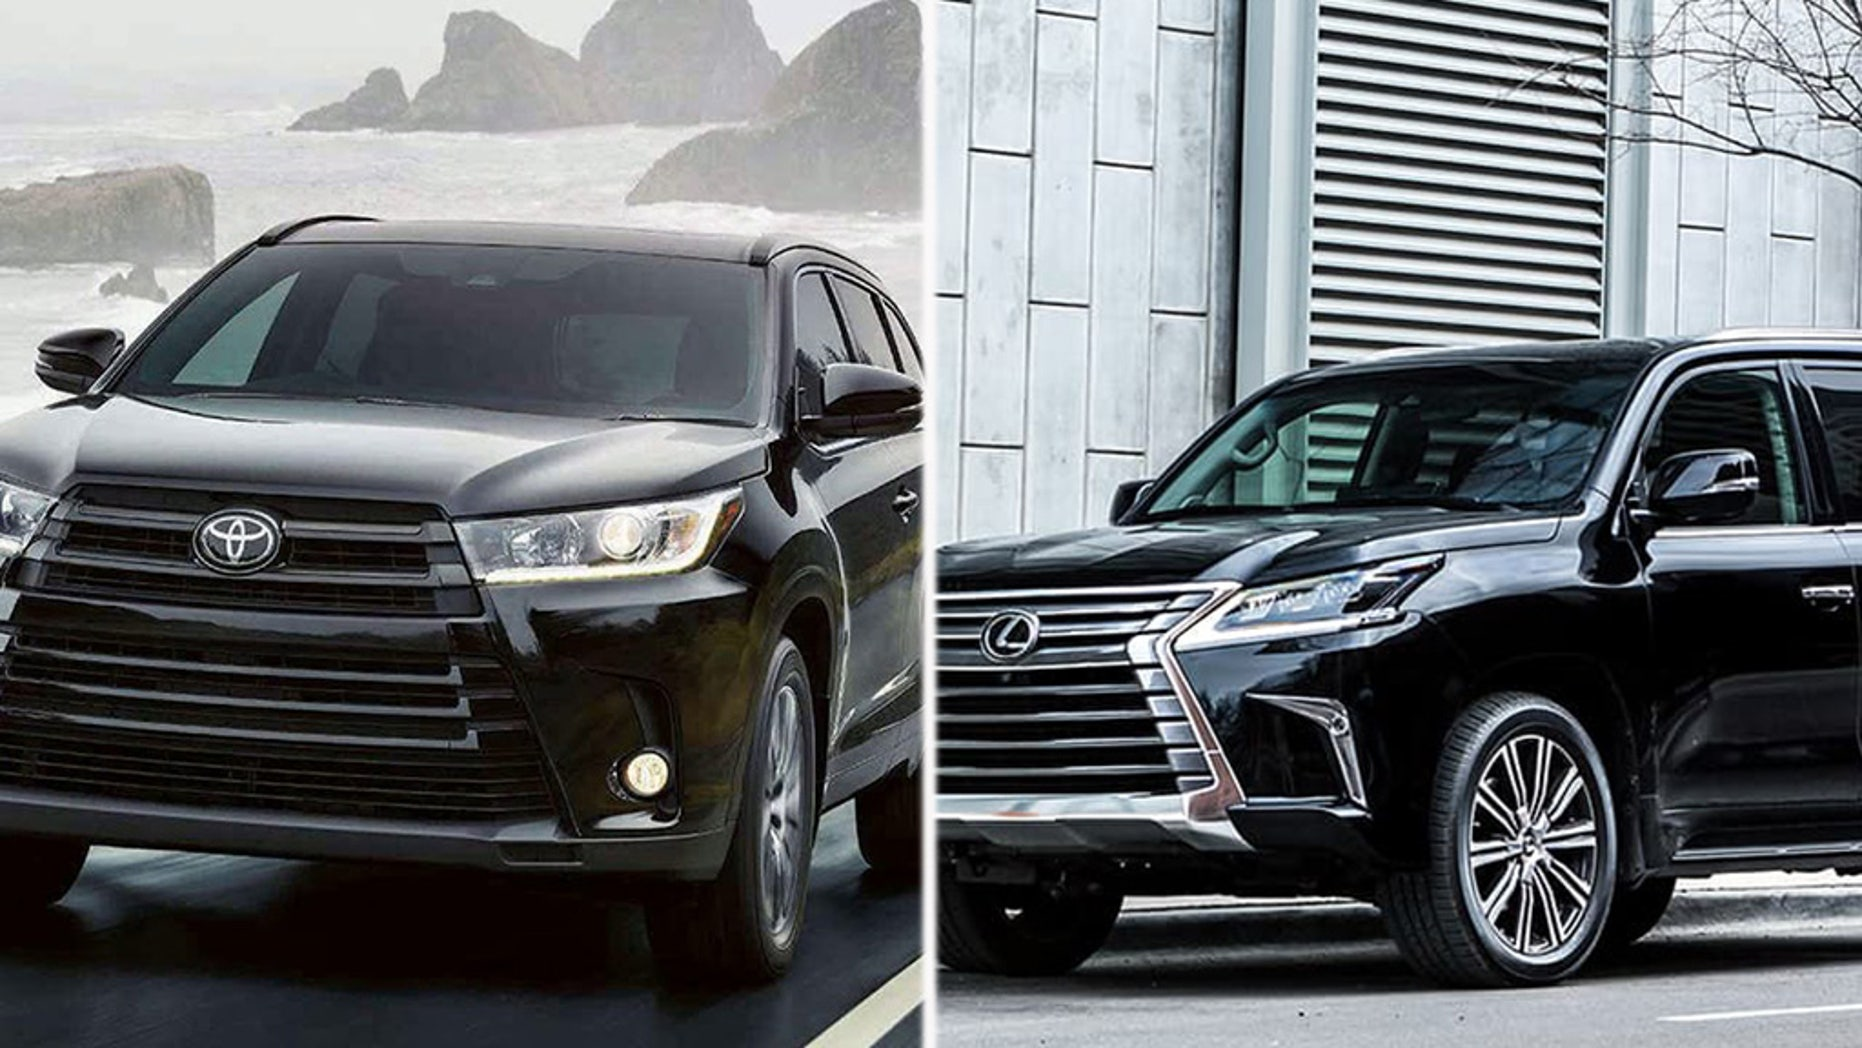 Toyota is recalling about 96,000 Toyota Land Cruisers and Lexus LX570 SUVs from 2008 through 2019.